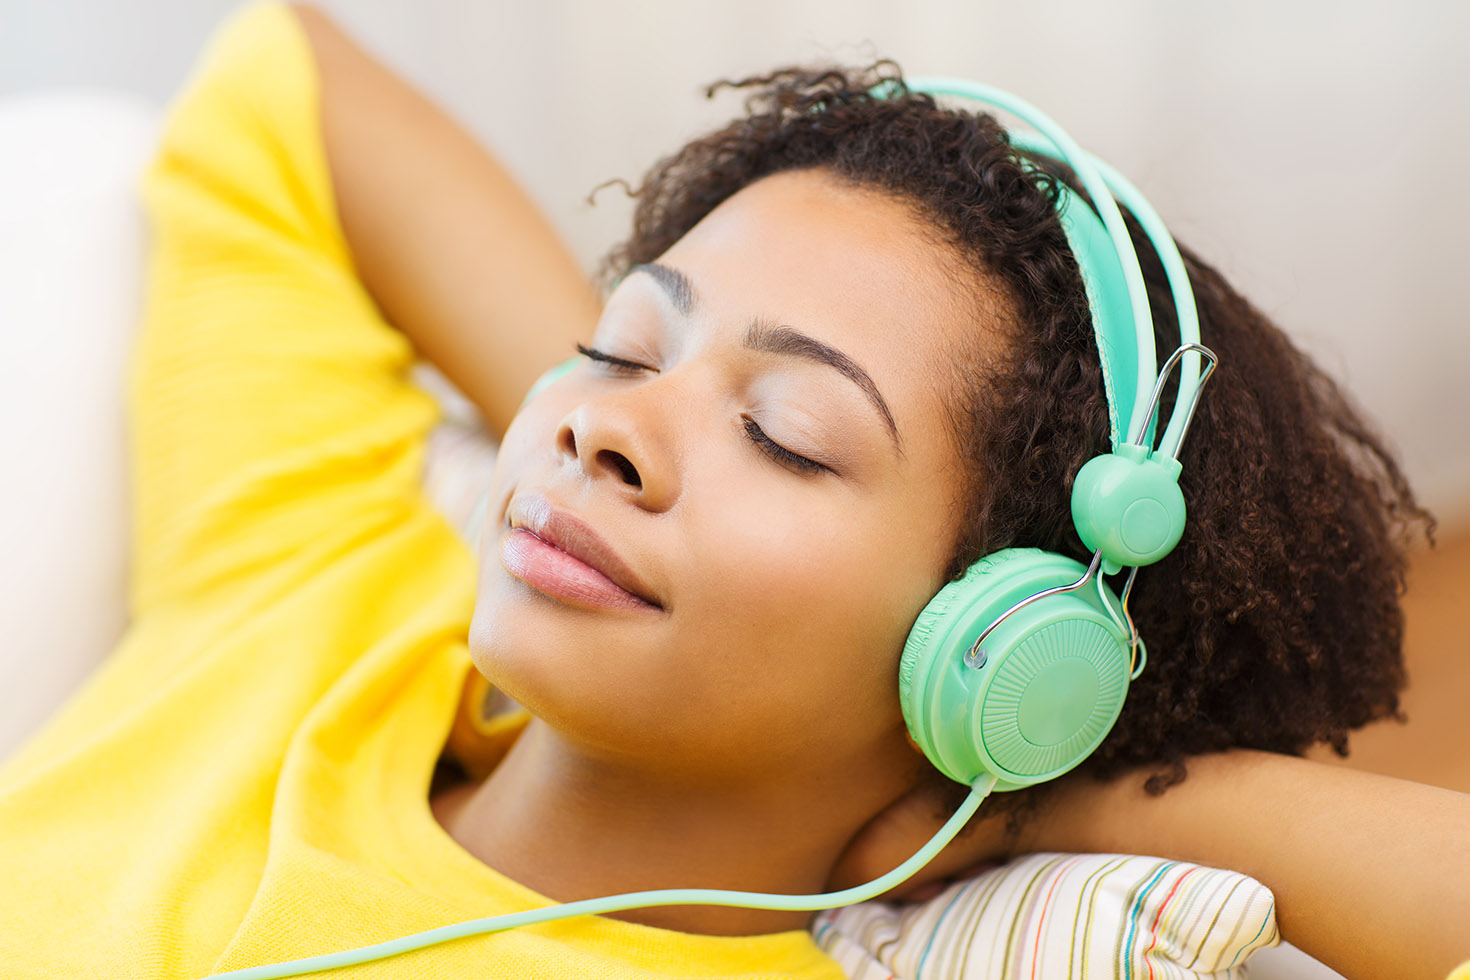 Peaceful Girl with Headphones